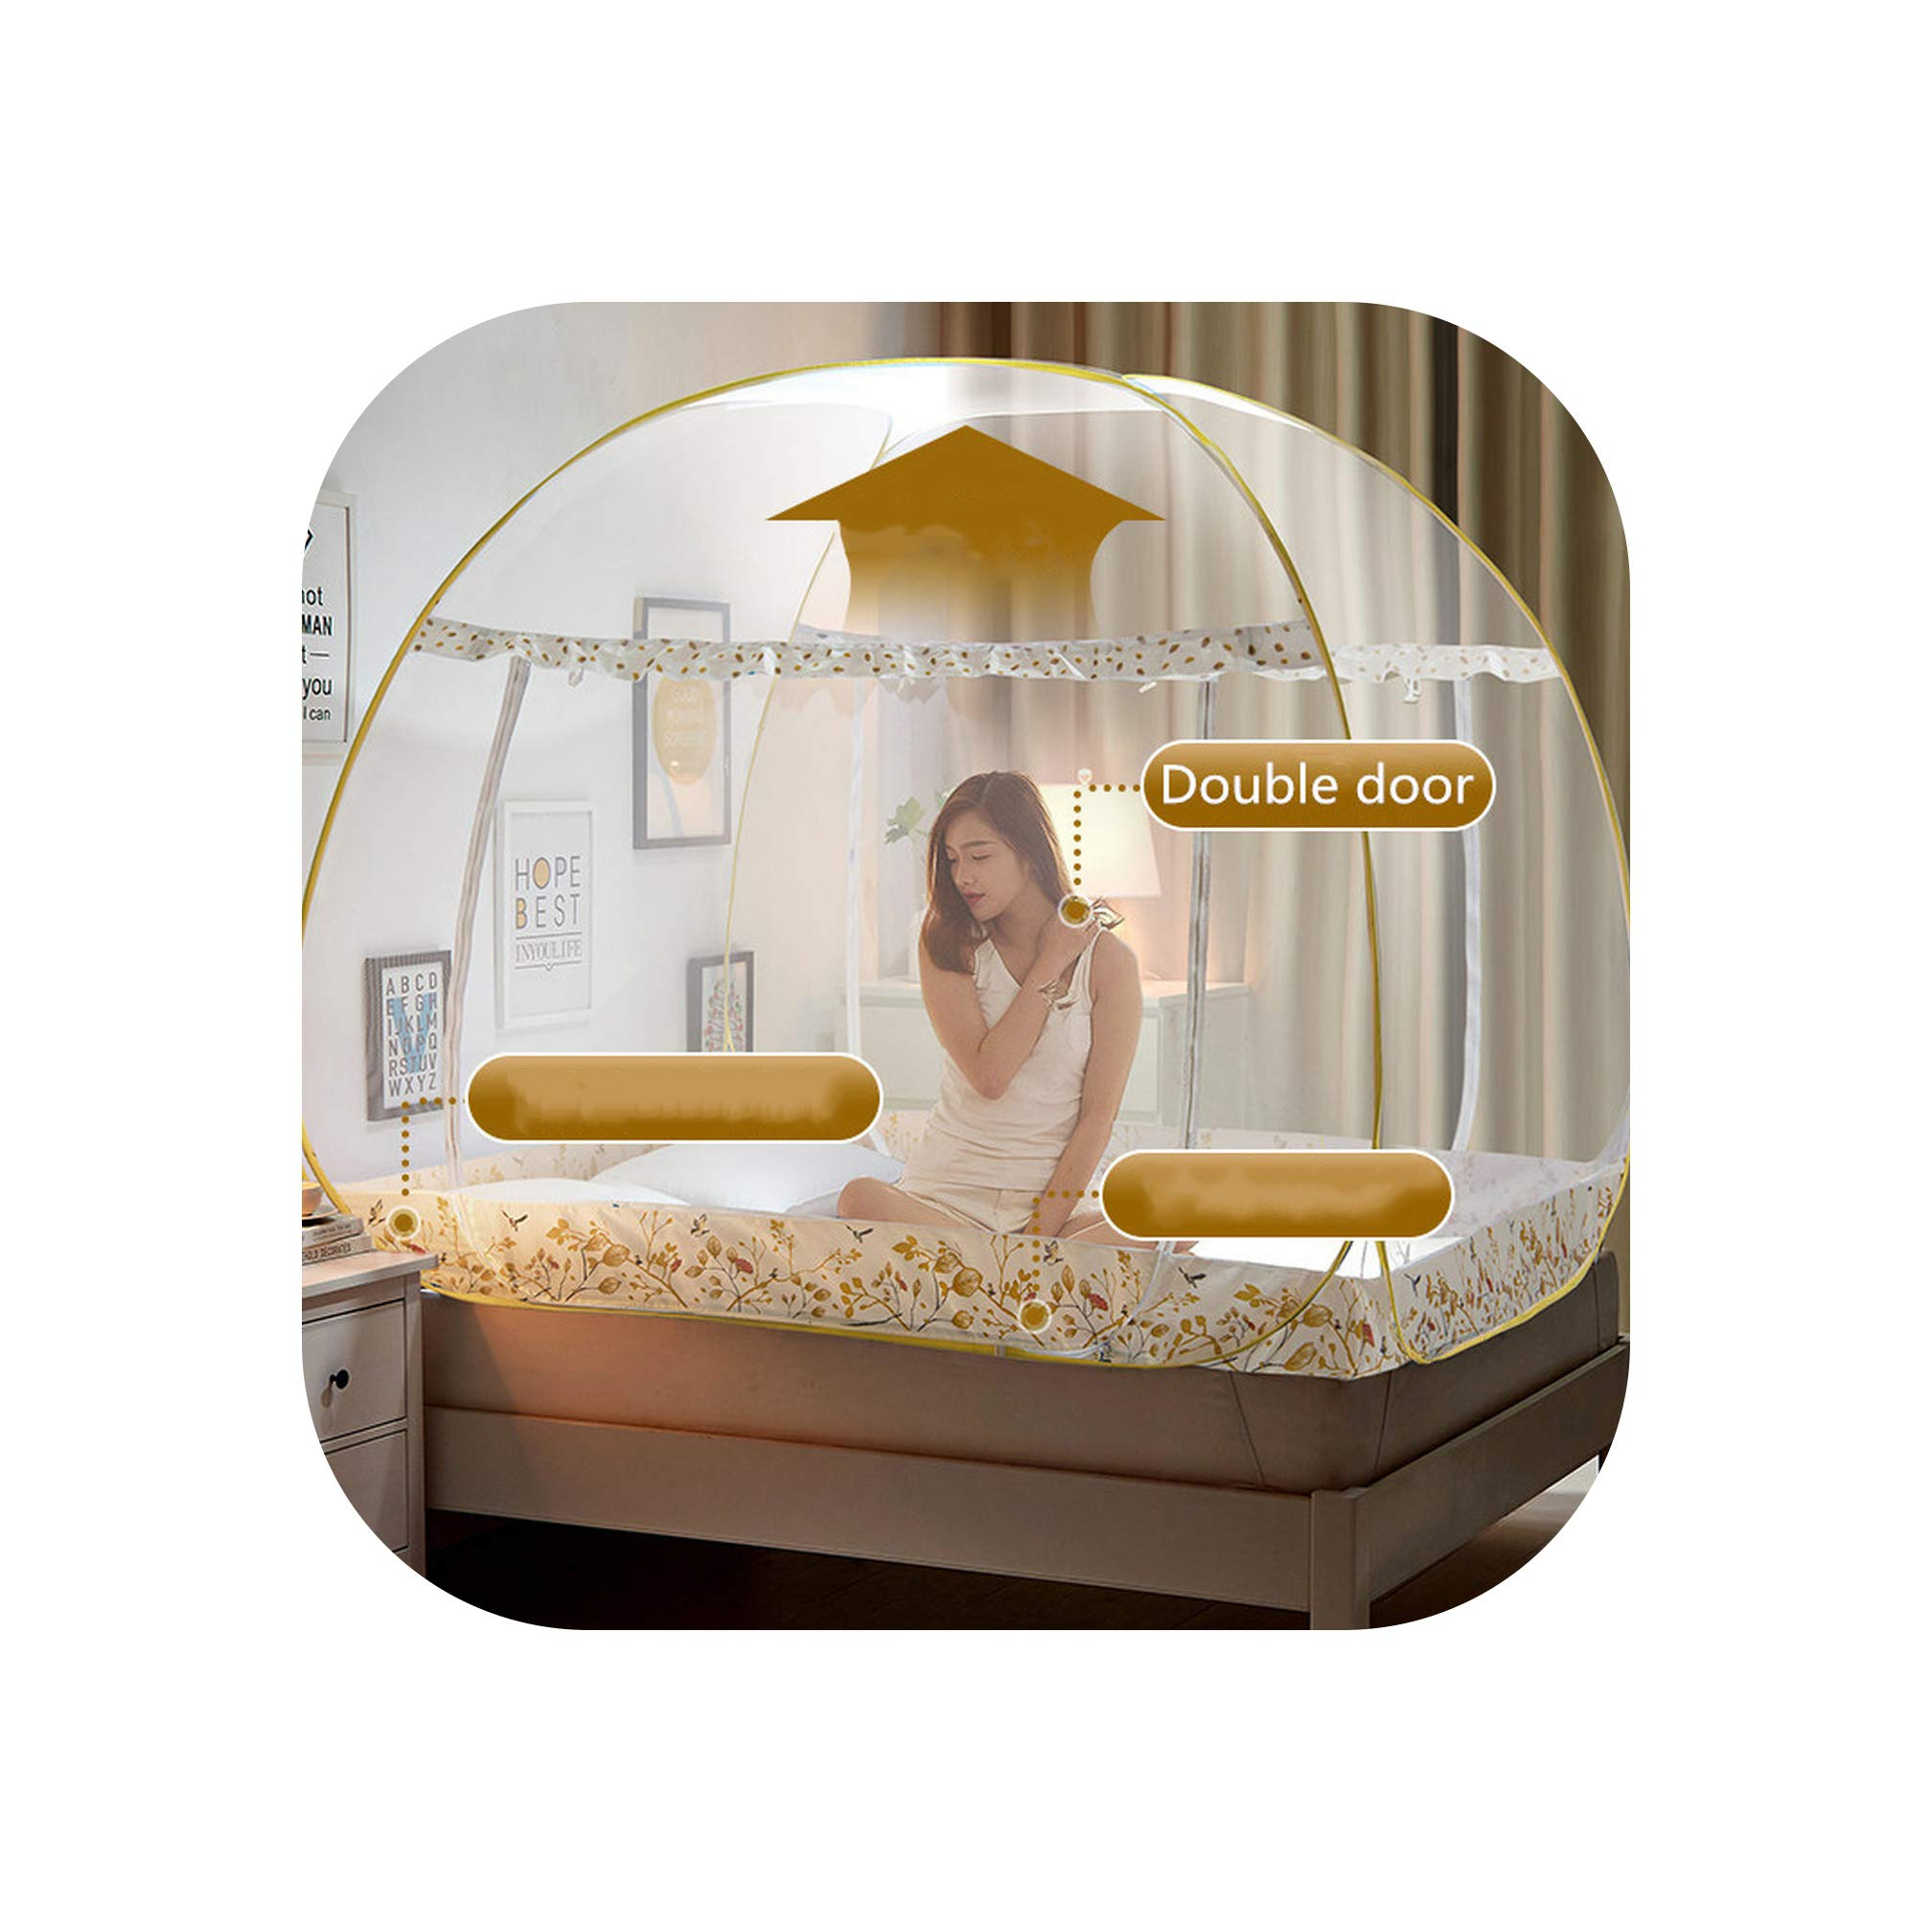 Folding Mosquito Net for Student Adults Double Bed Mosquito Netting Mesh Modern Style Anti Falling Bed Nets,Yellow Spring 2 Door,1.5m (5 feet) Bed